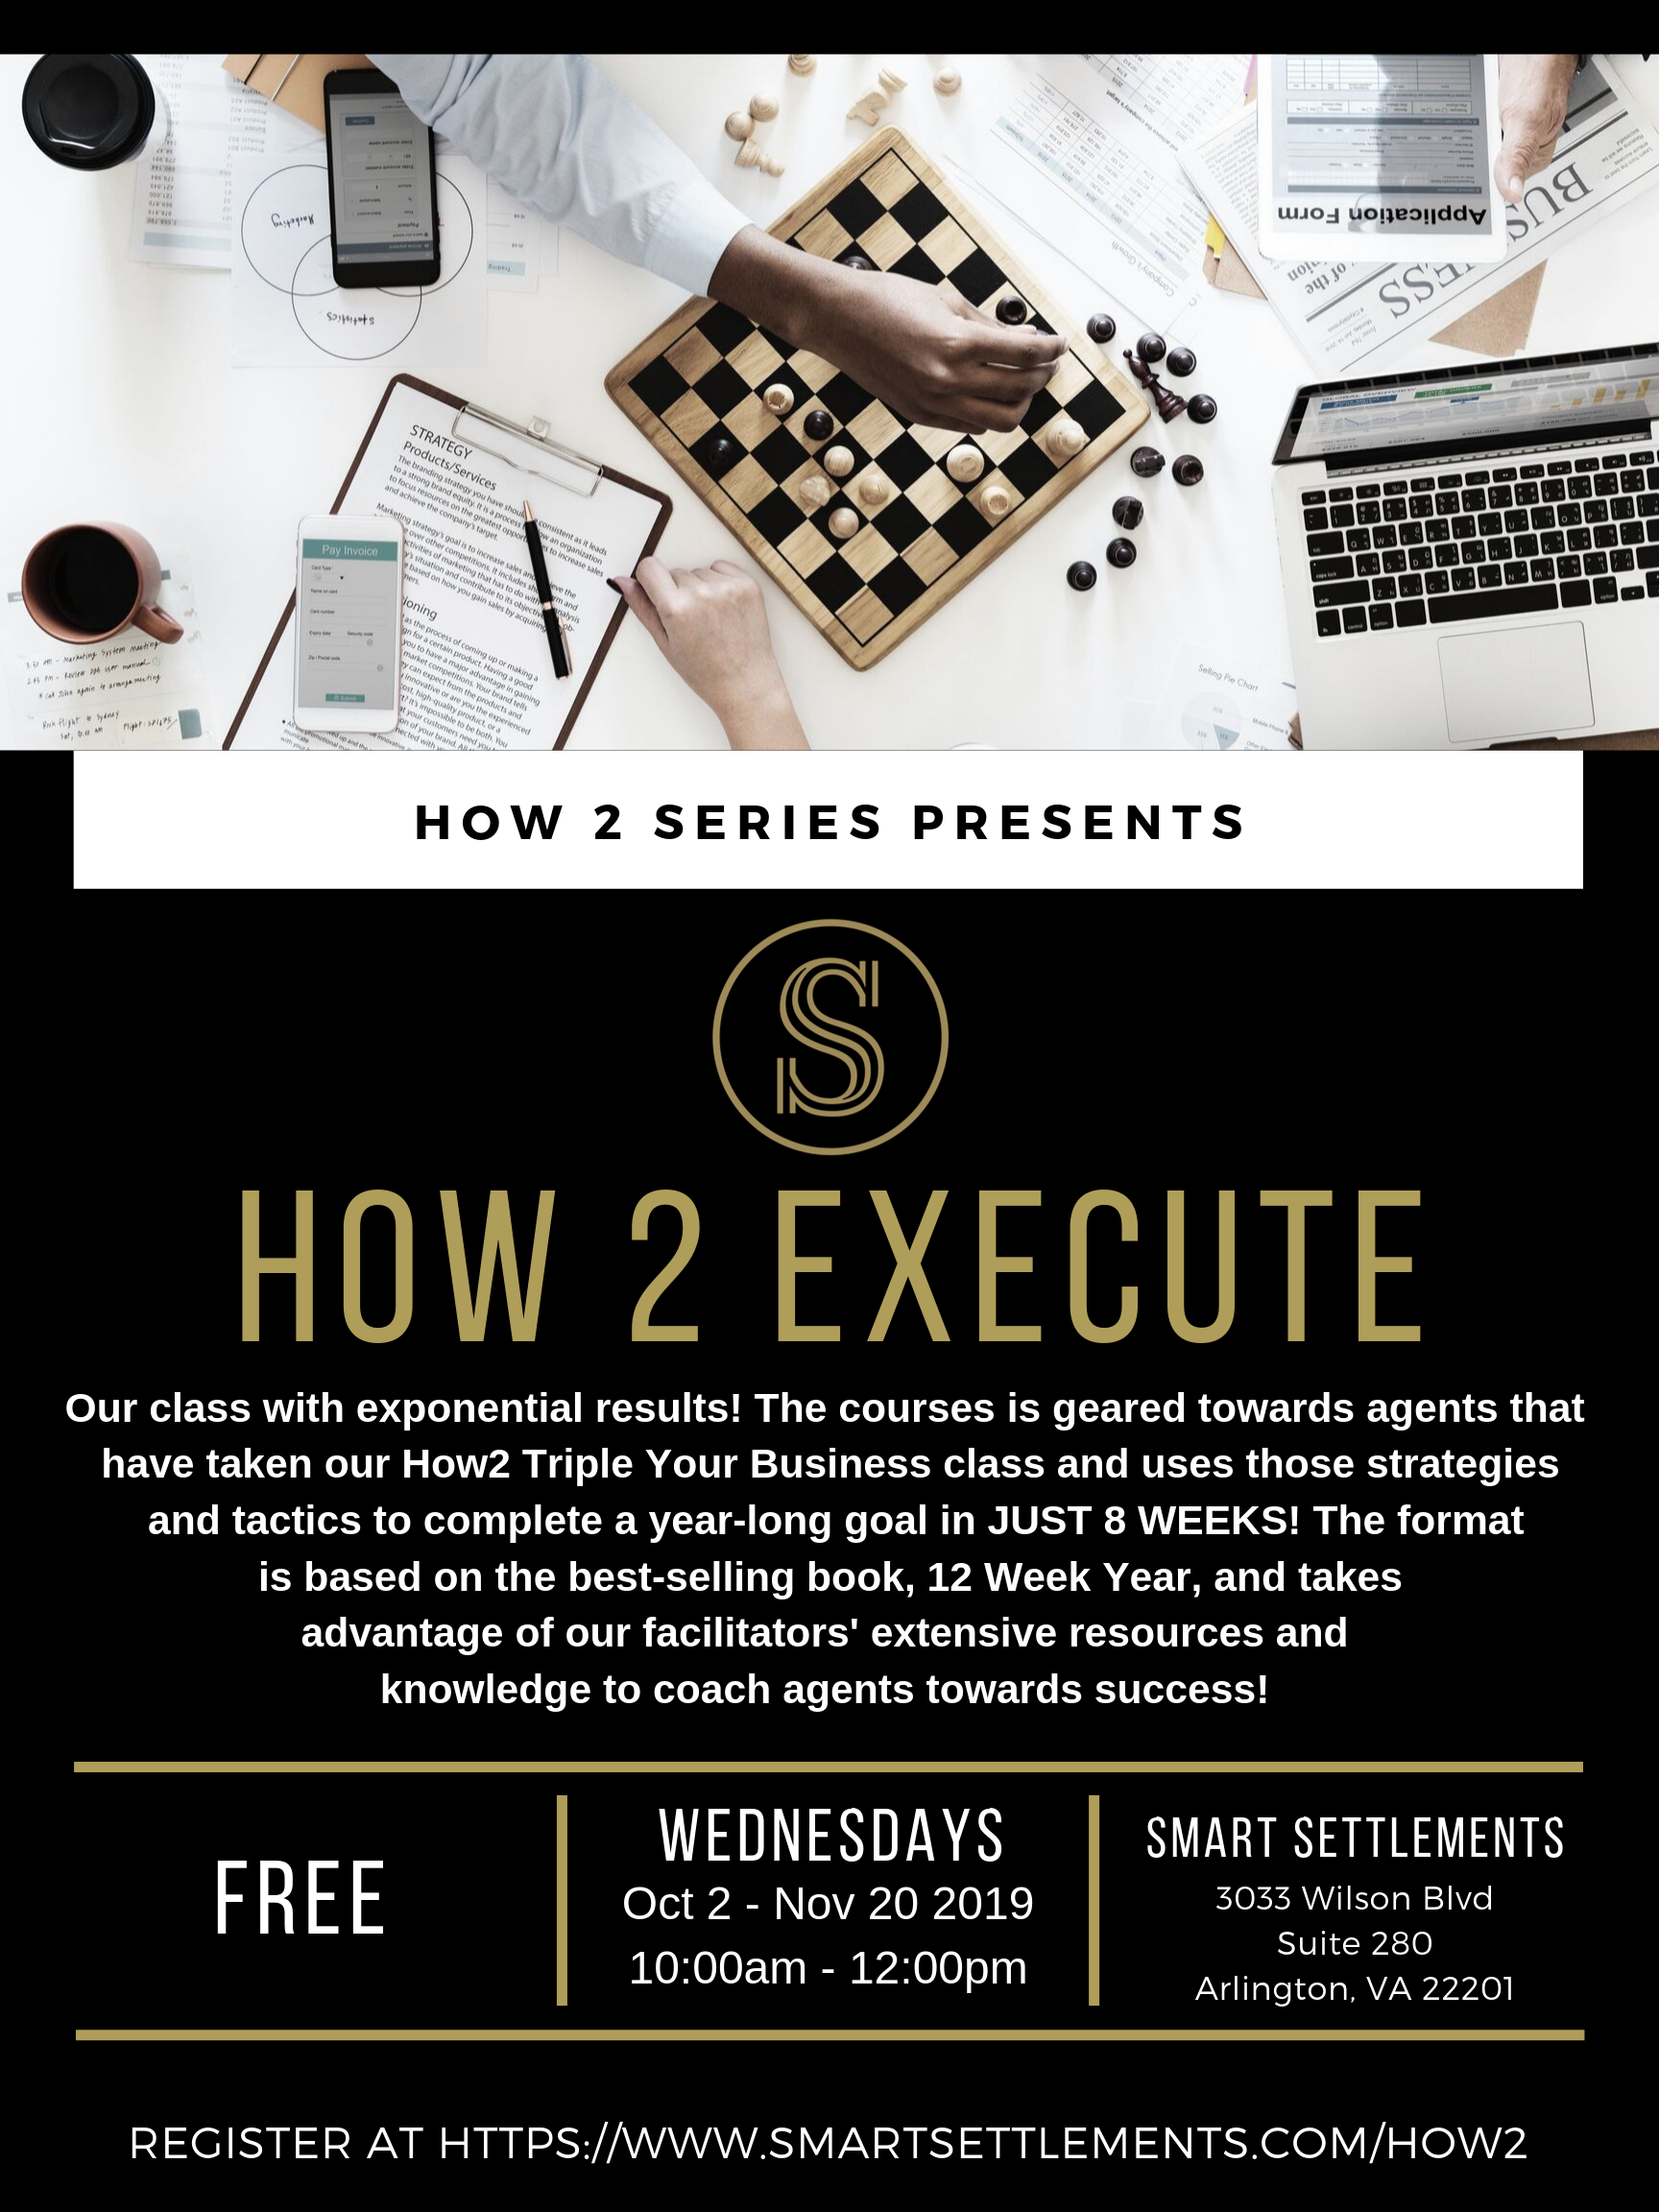 Copy of How 2 series presents-2.png